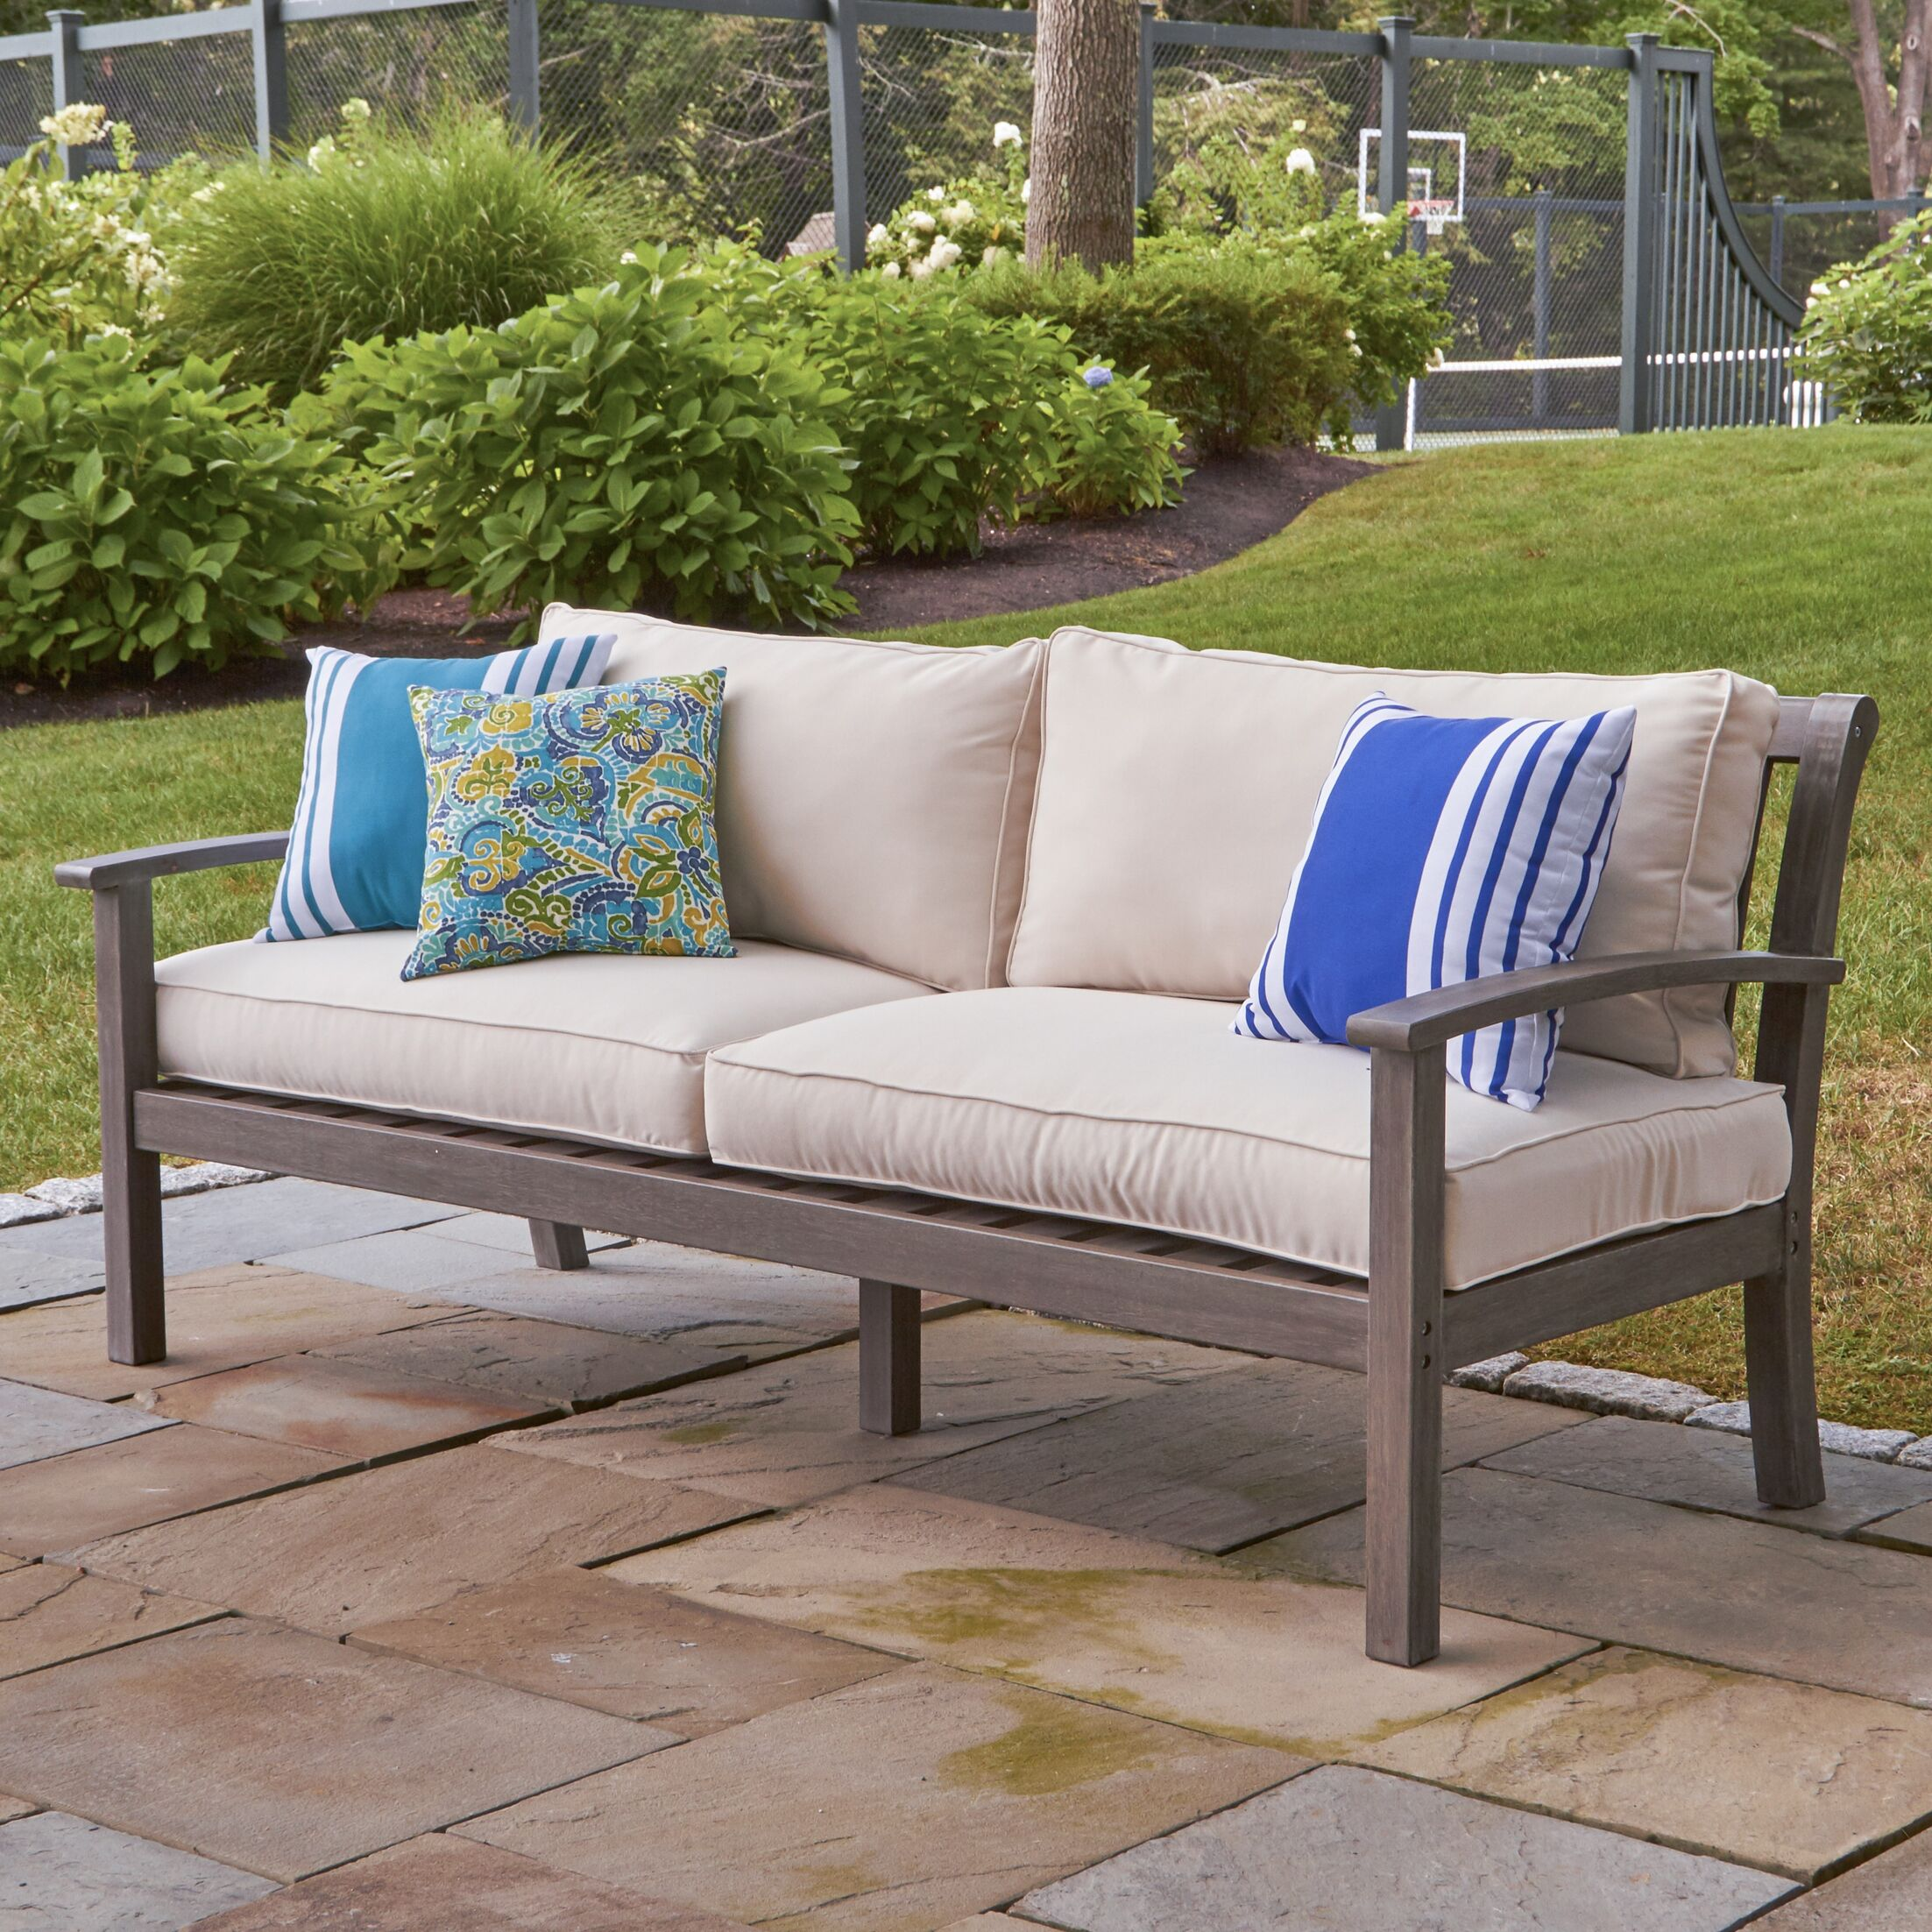 Rossi Patio Sofa with Cushions Fabric: White